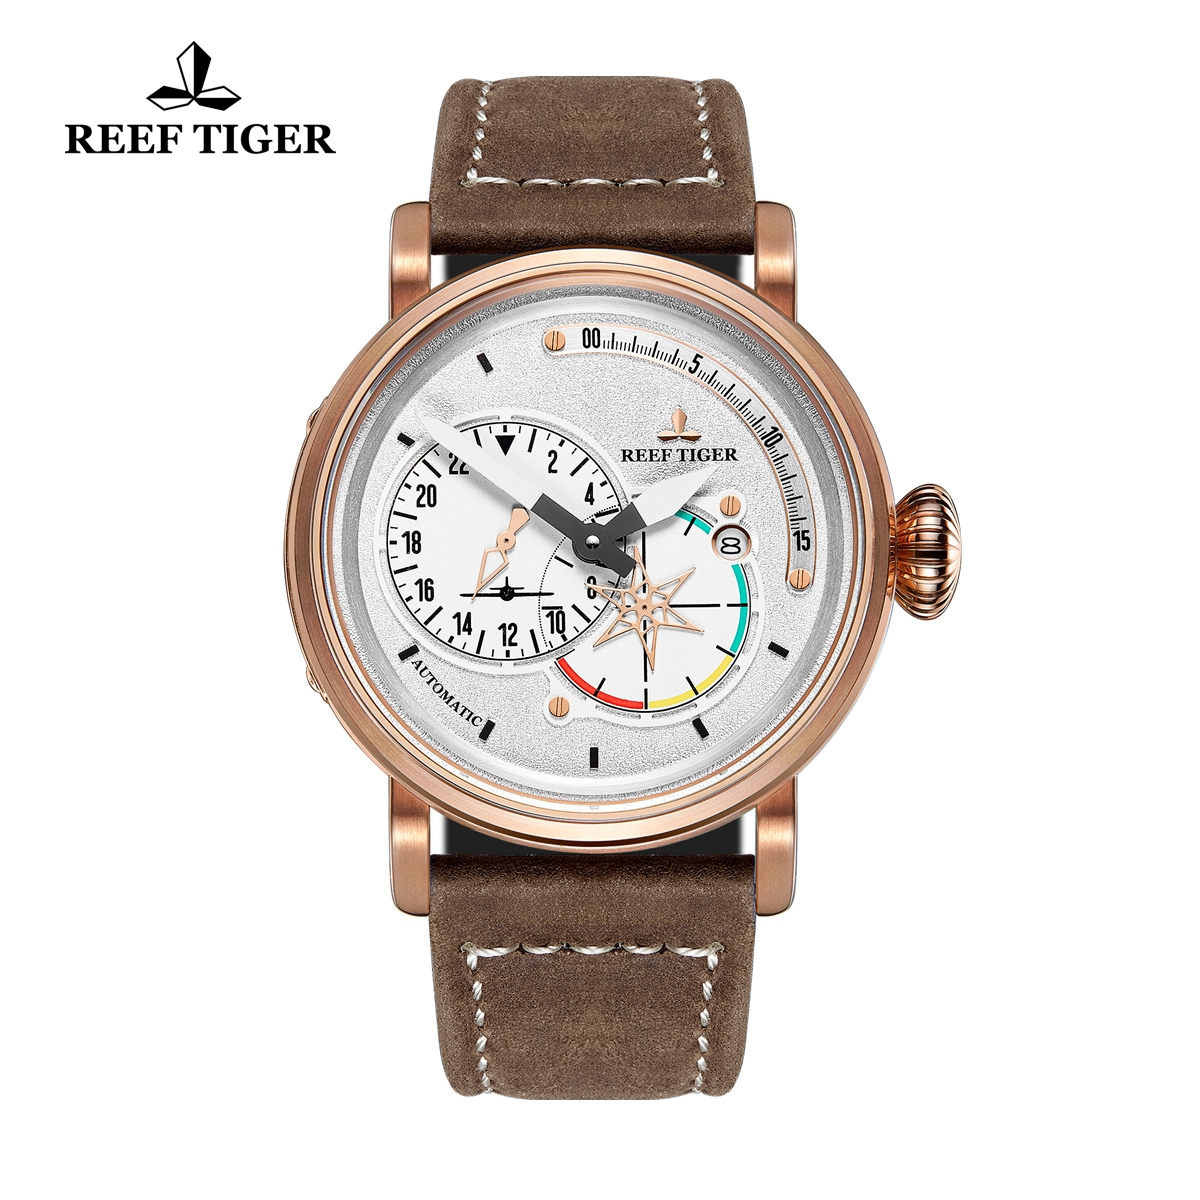 Reef Tiger Pilot Mens Watches Rose Gold Case White Dial Leather Strap Watches RGA3019-PWS